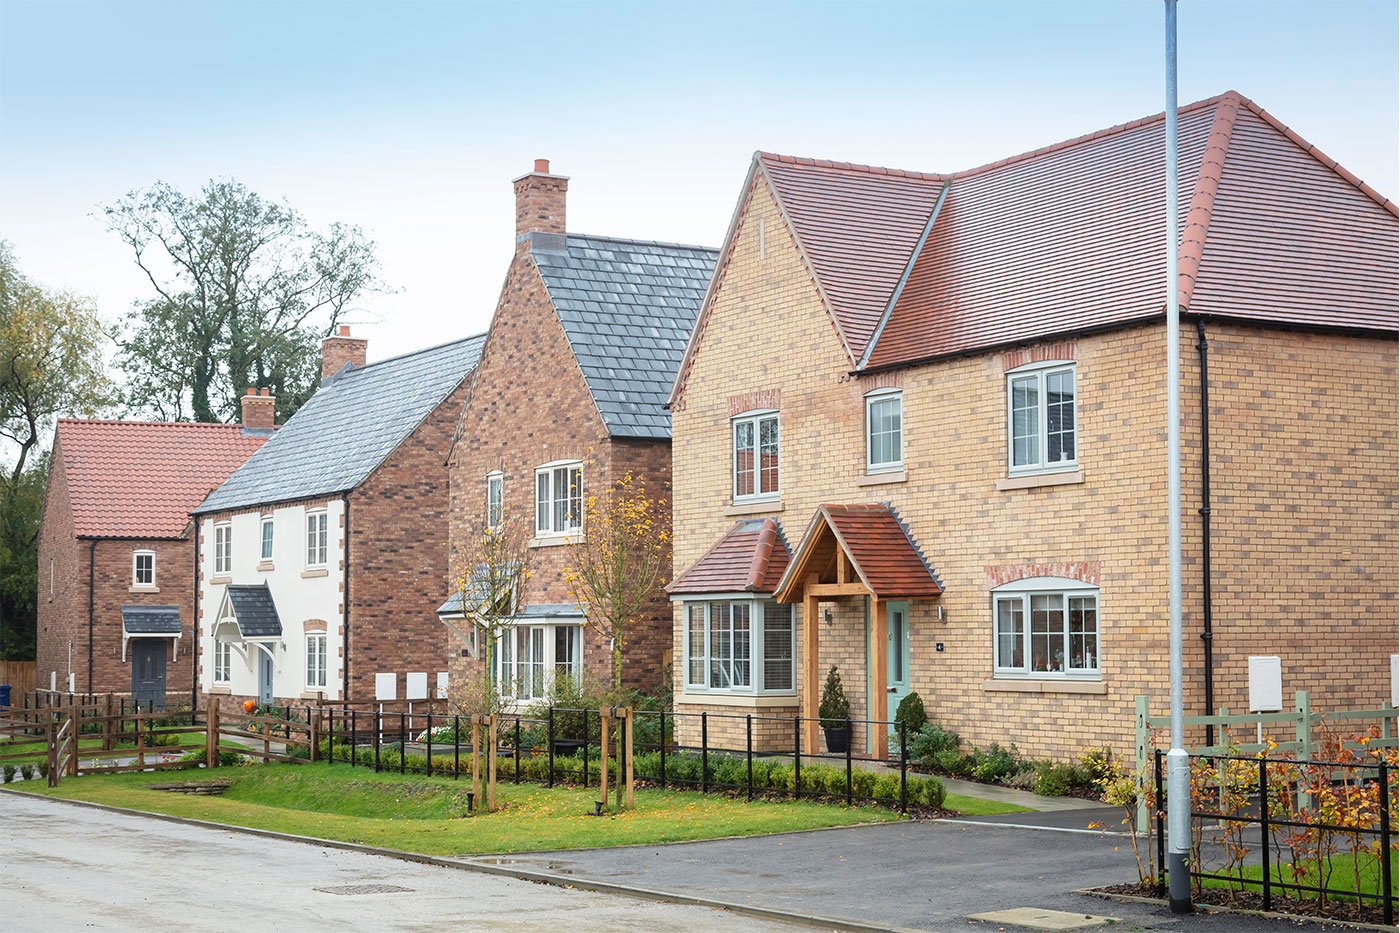 New homes on Lodge Lane in Nettleham